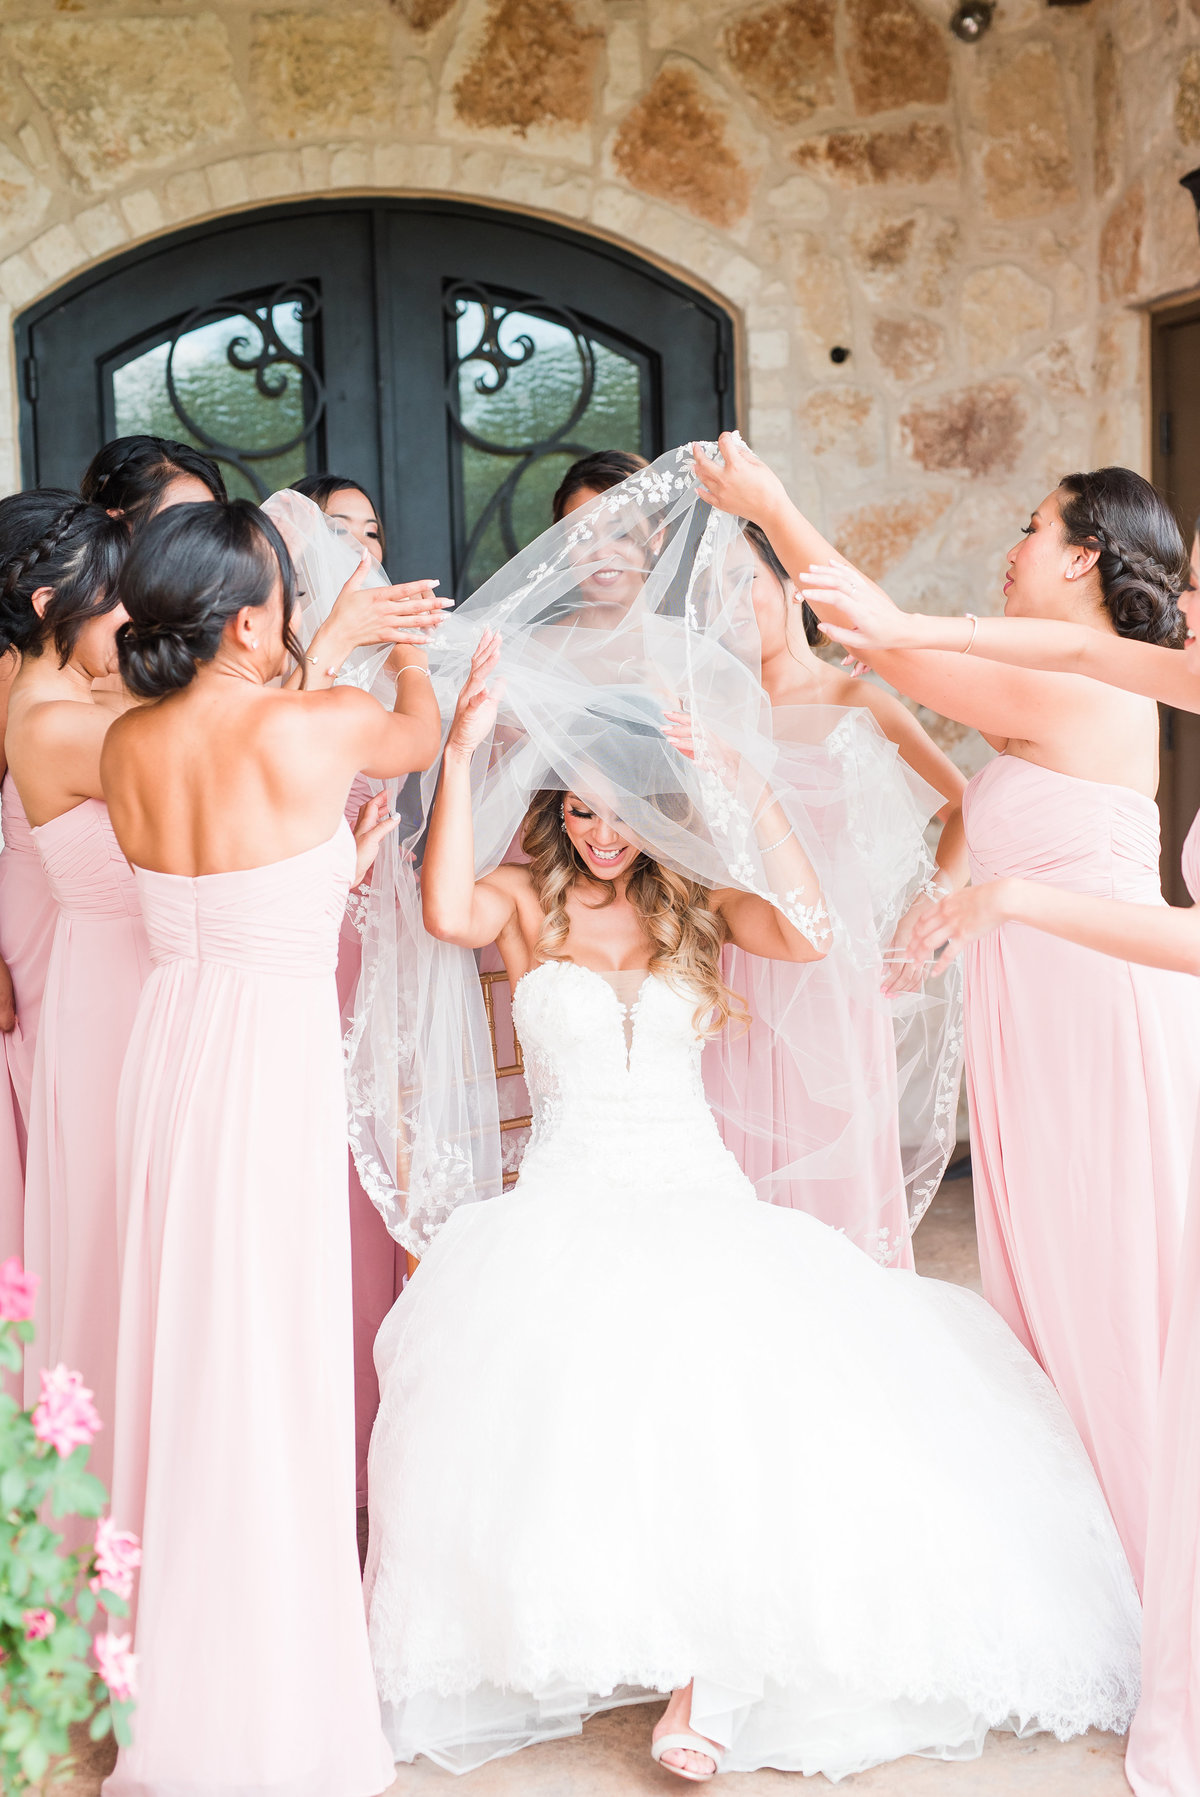 The Springs Tuscany Hill Bridal